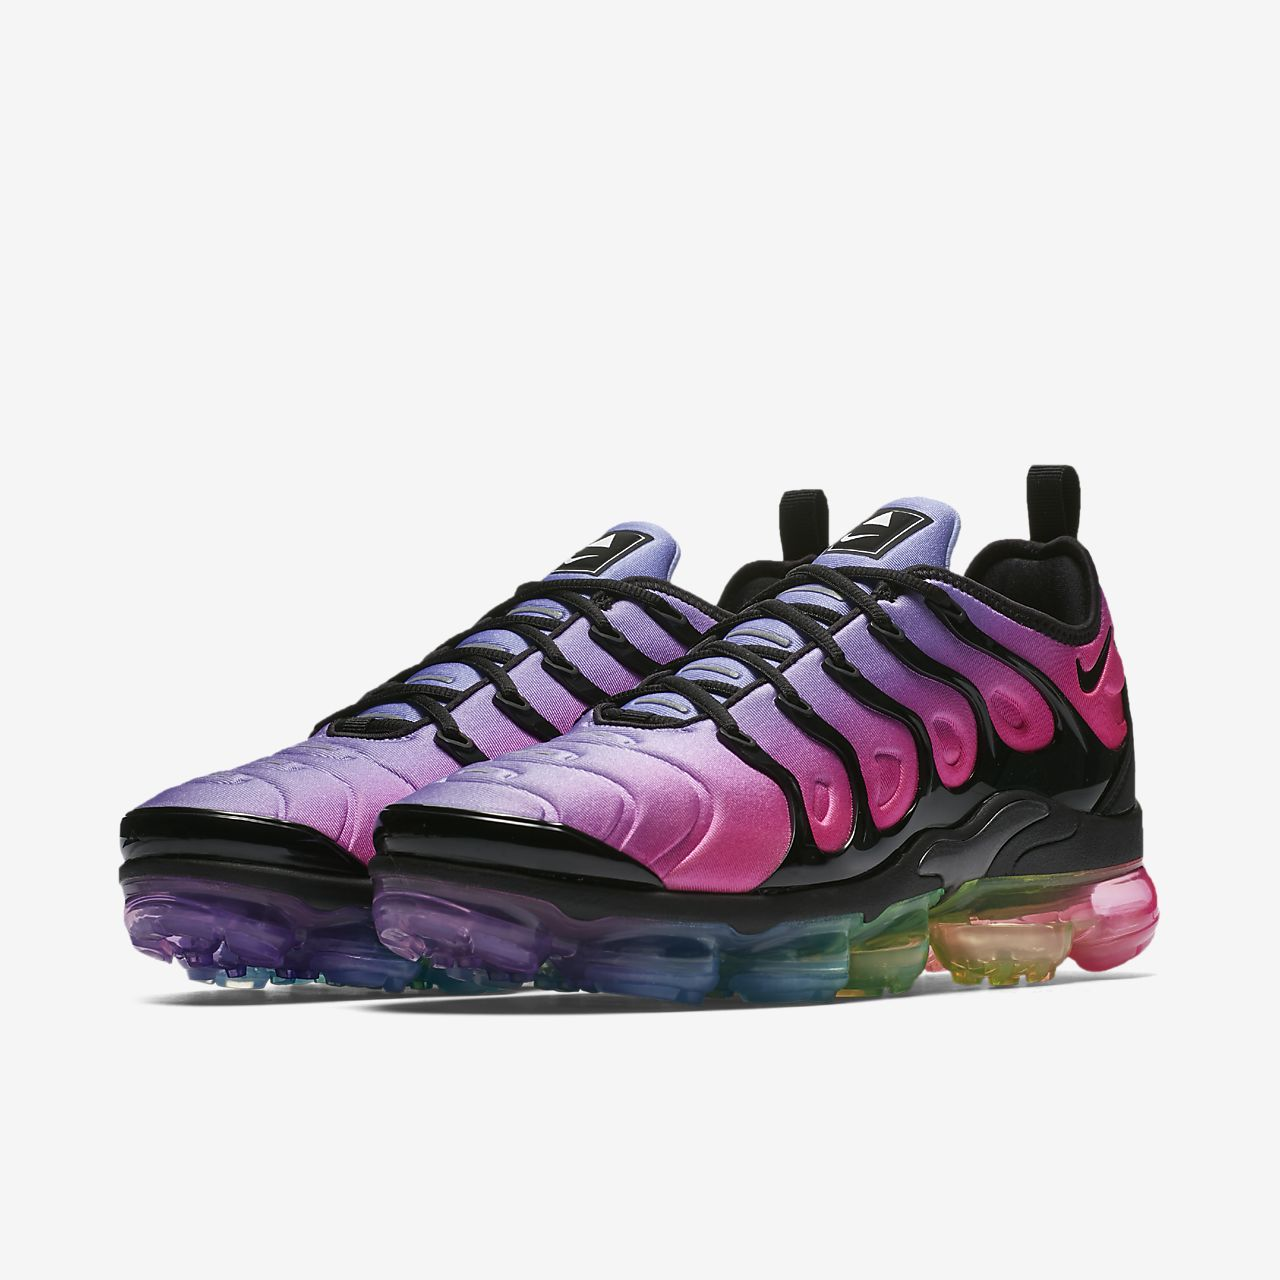 super popular e3efc e3904 ... Nike Air VaporMax Plus BETRUE sko til herre